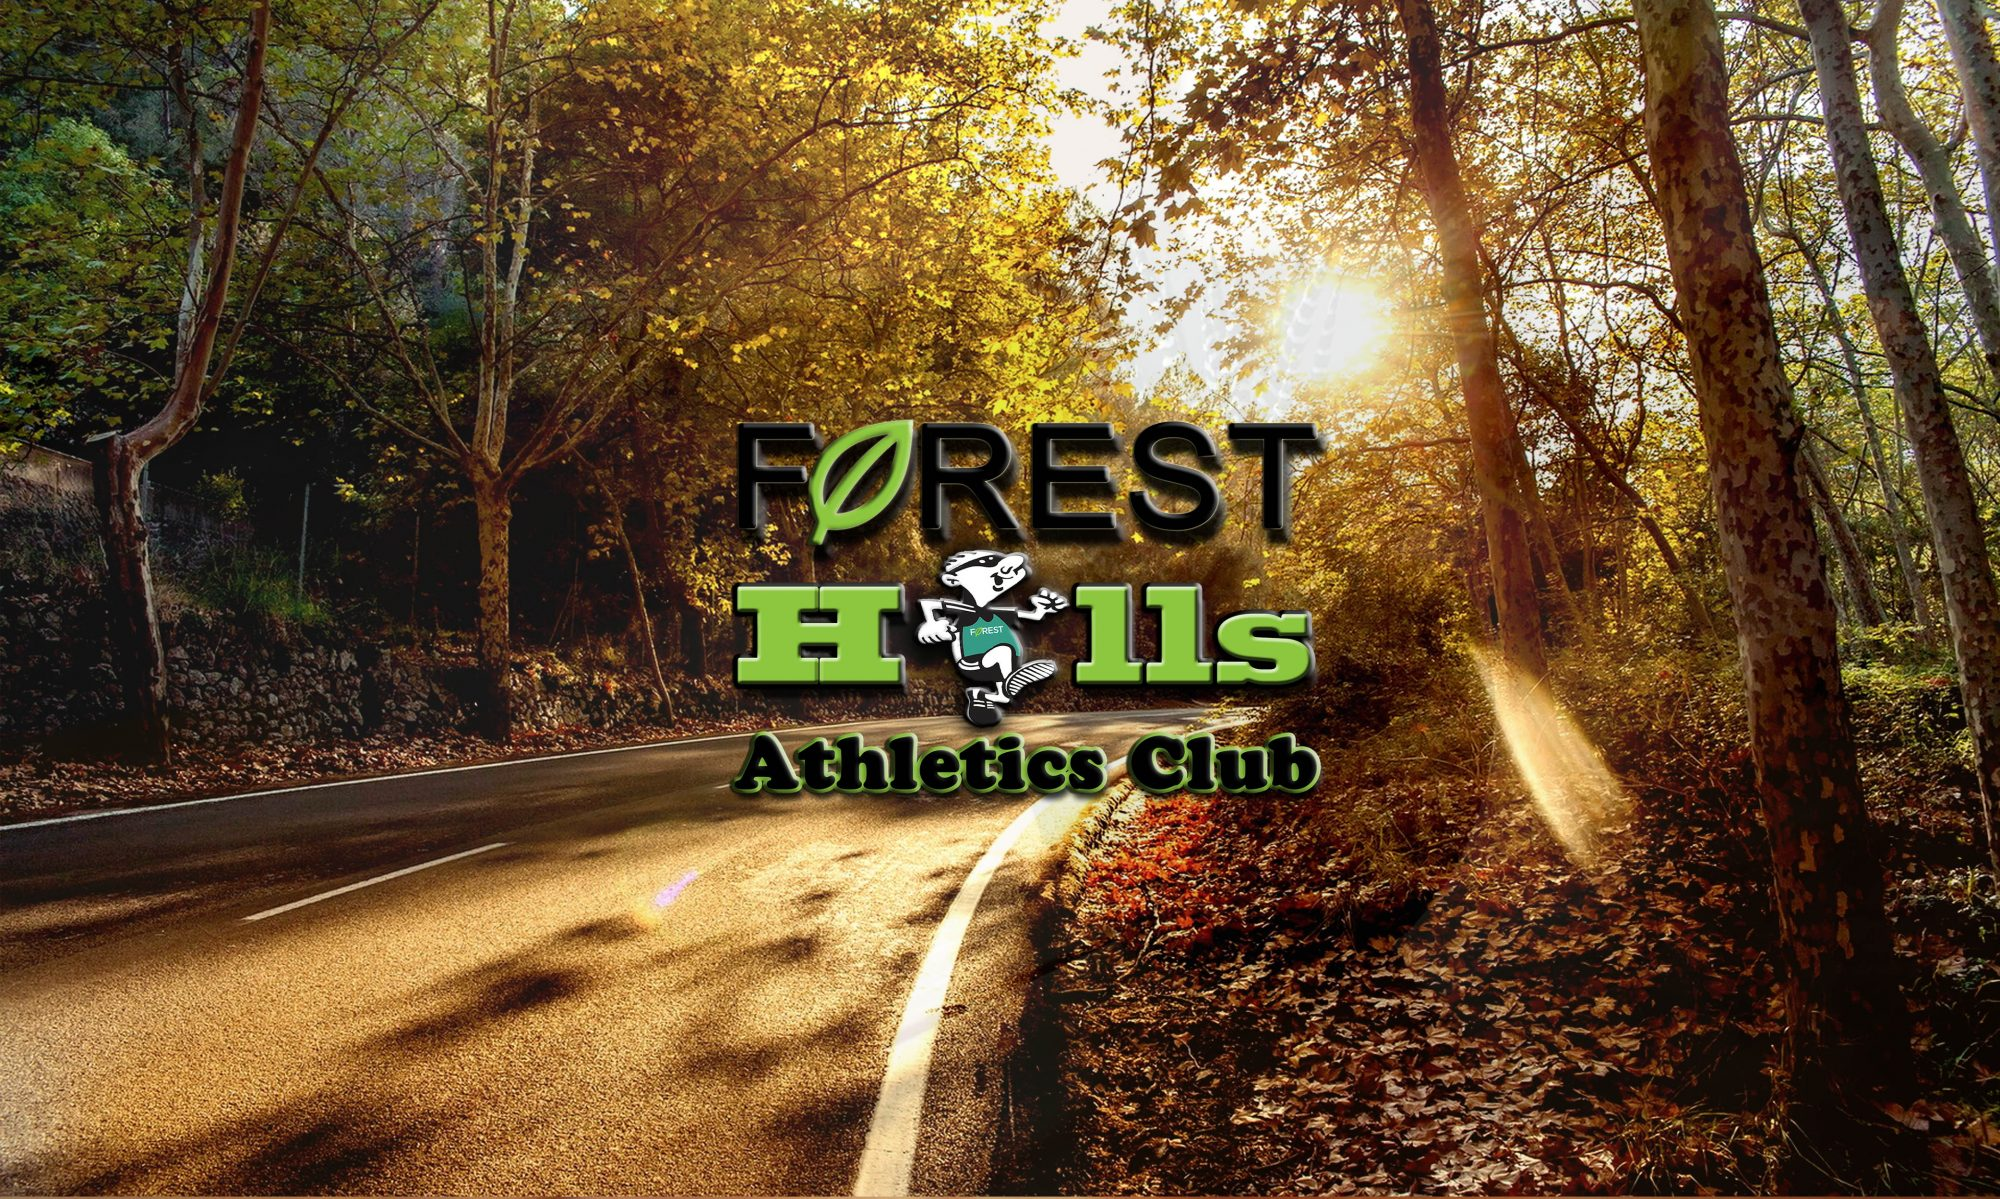 Forest Hills Athletics Club